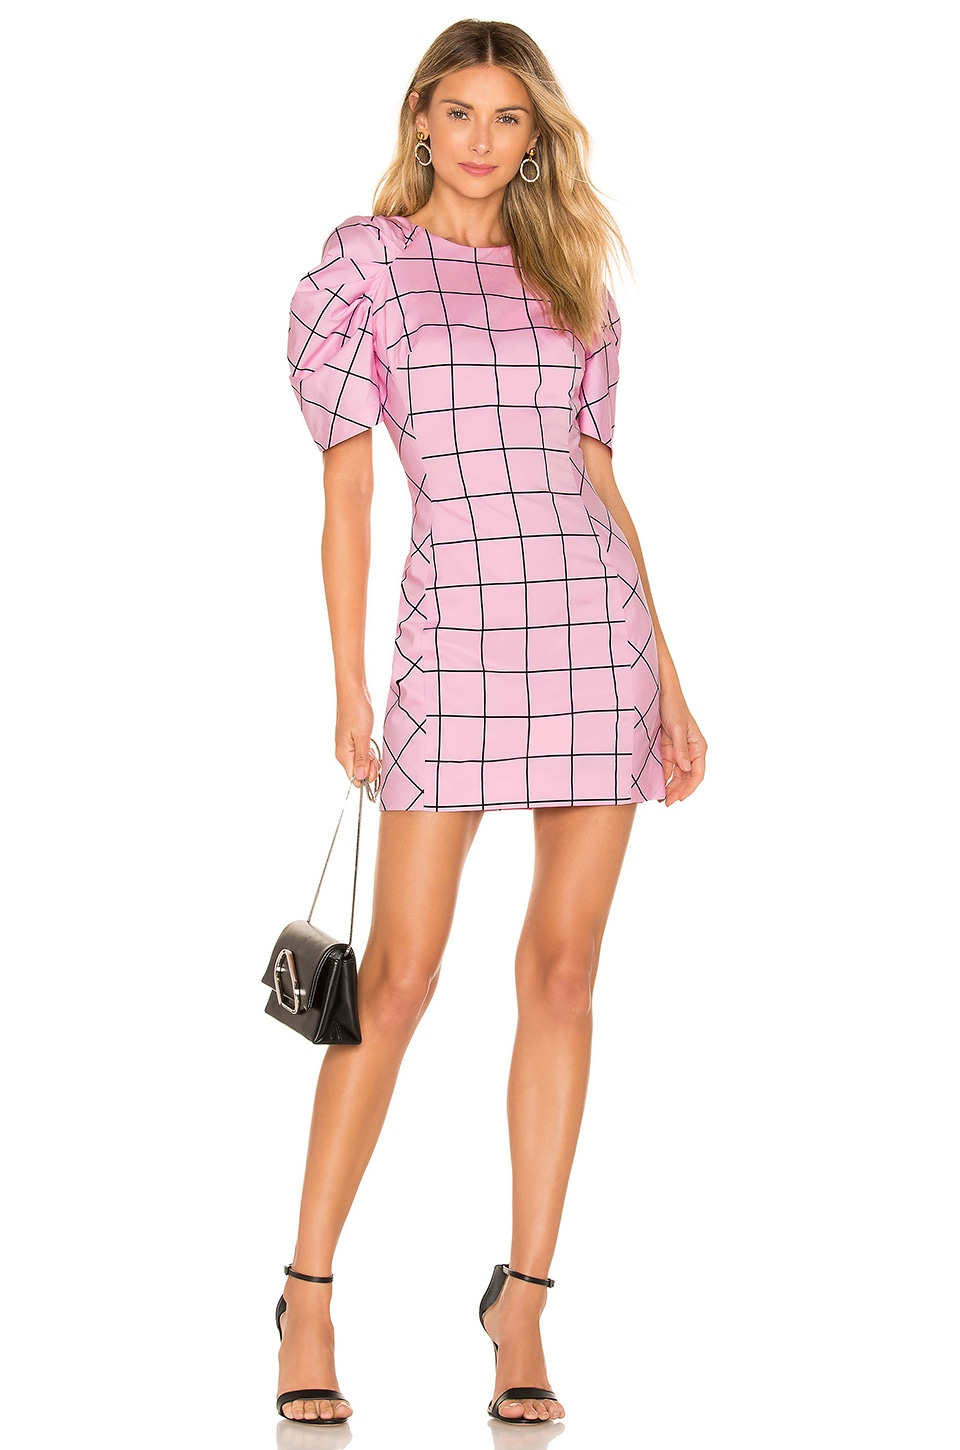 MILLY Techno Aria Dress in Pink & Black